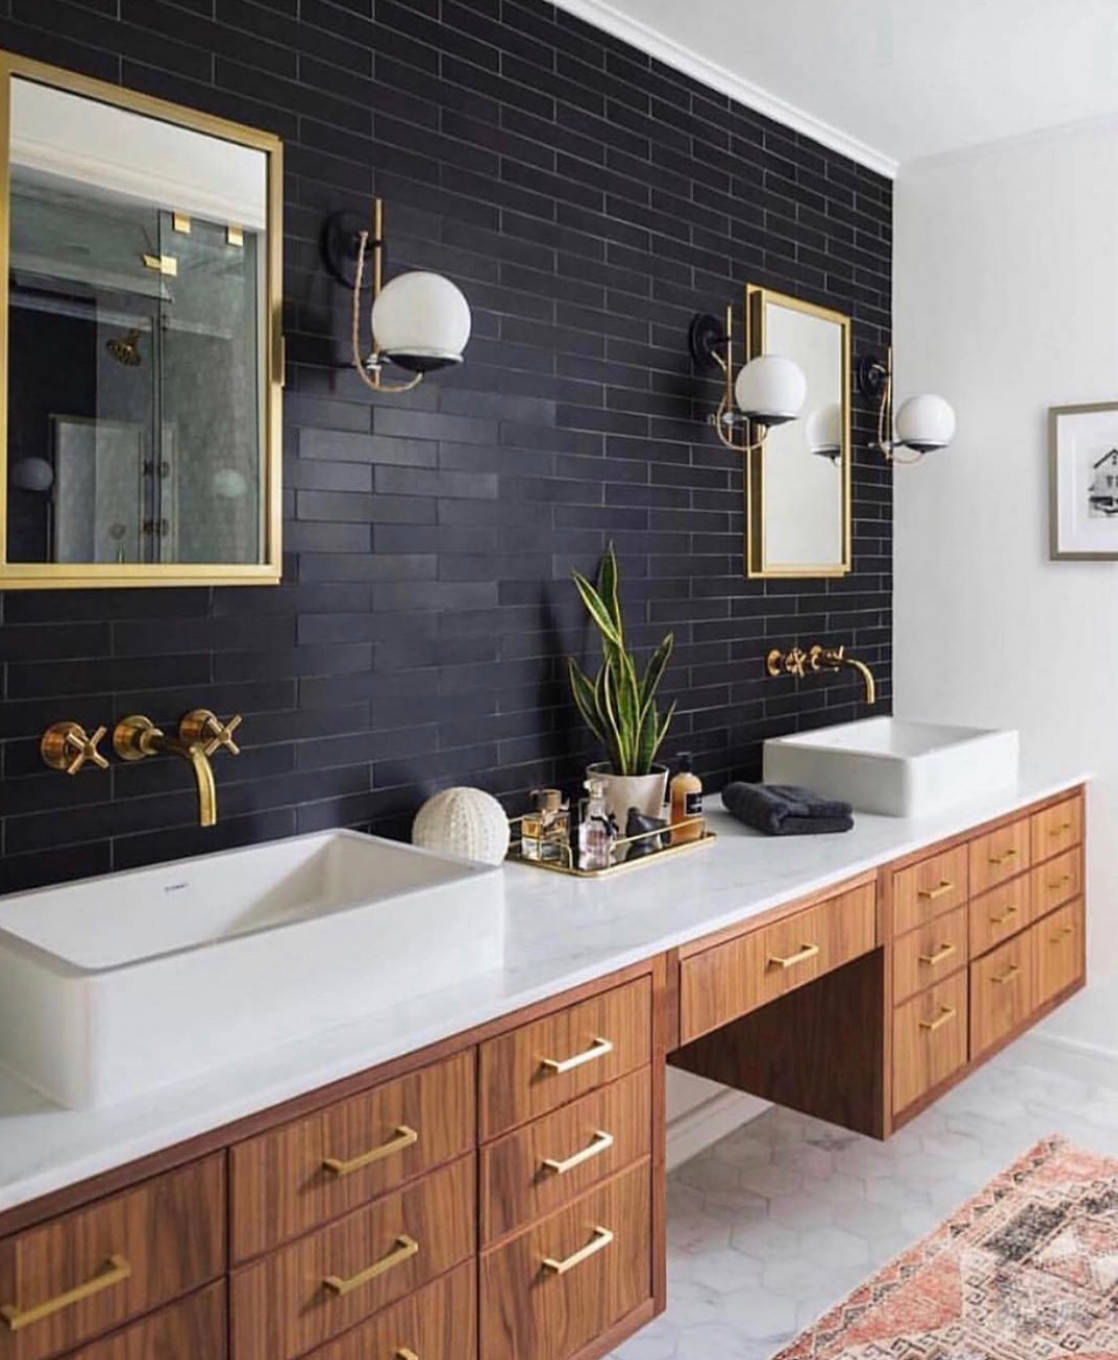 75 Beautiful Black Tile Bathroom Pictures Ideas February 2021 Houzz